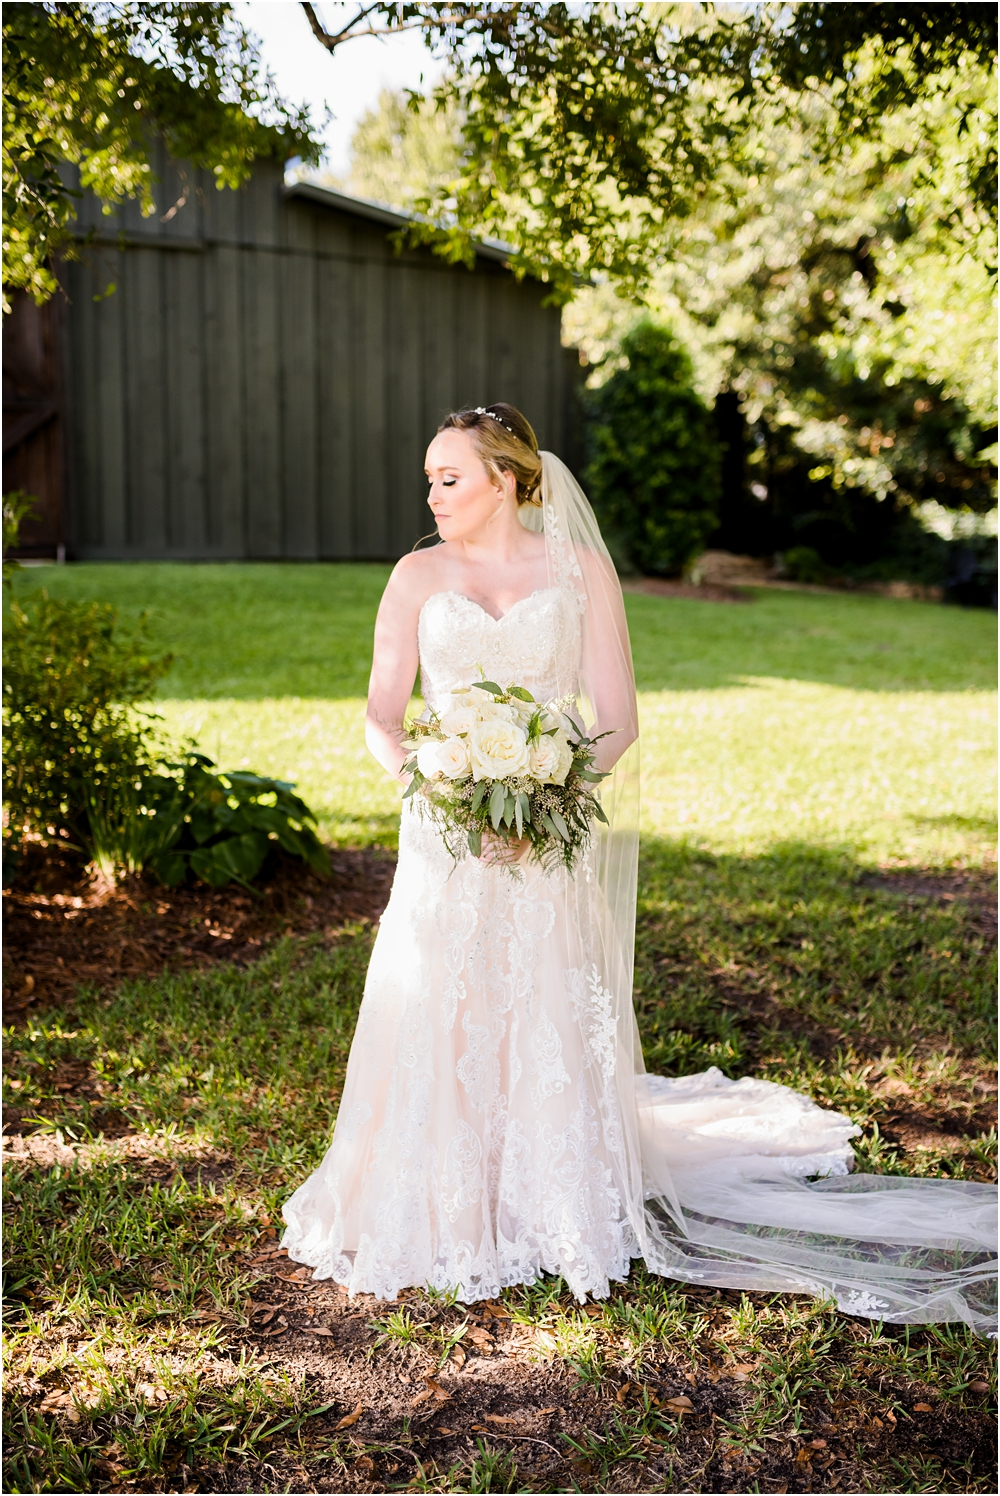 matthew-wedding-kiersten-stevenson-photography-30a-panama-city-beach-dothan-tallahassee-(169-of-579).JPG